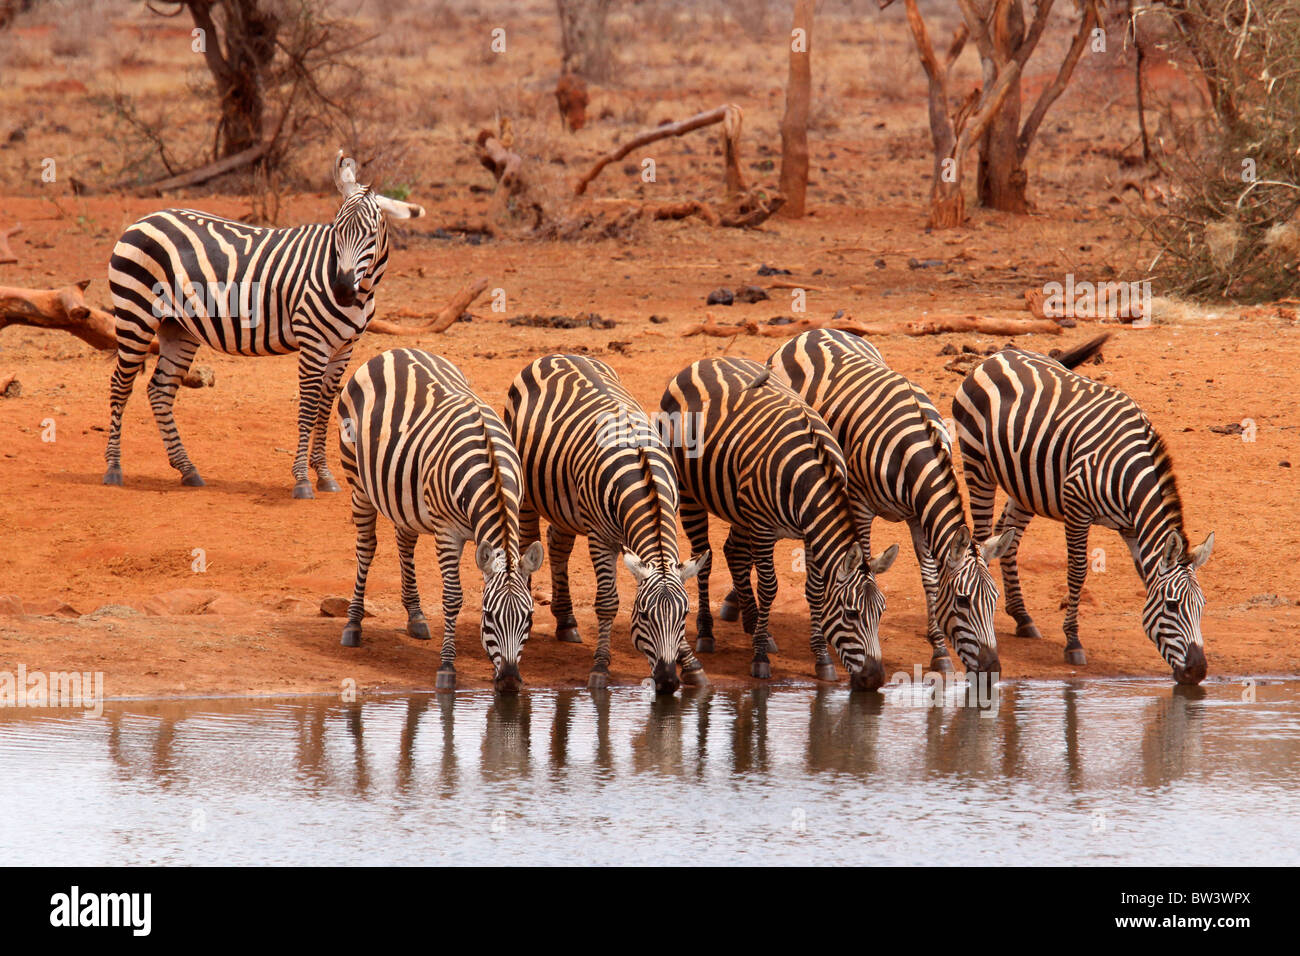 Herd of zebras drinking - Stock Image